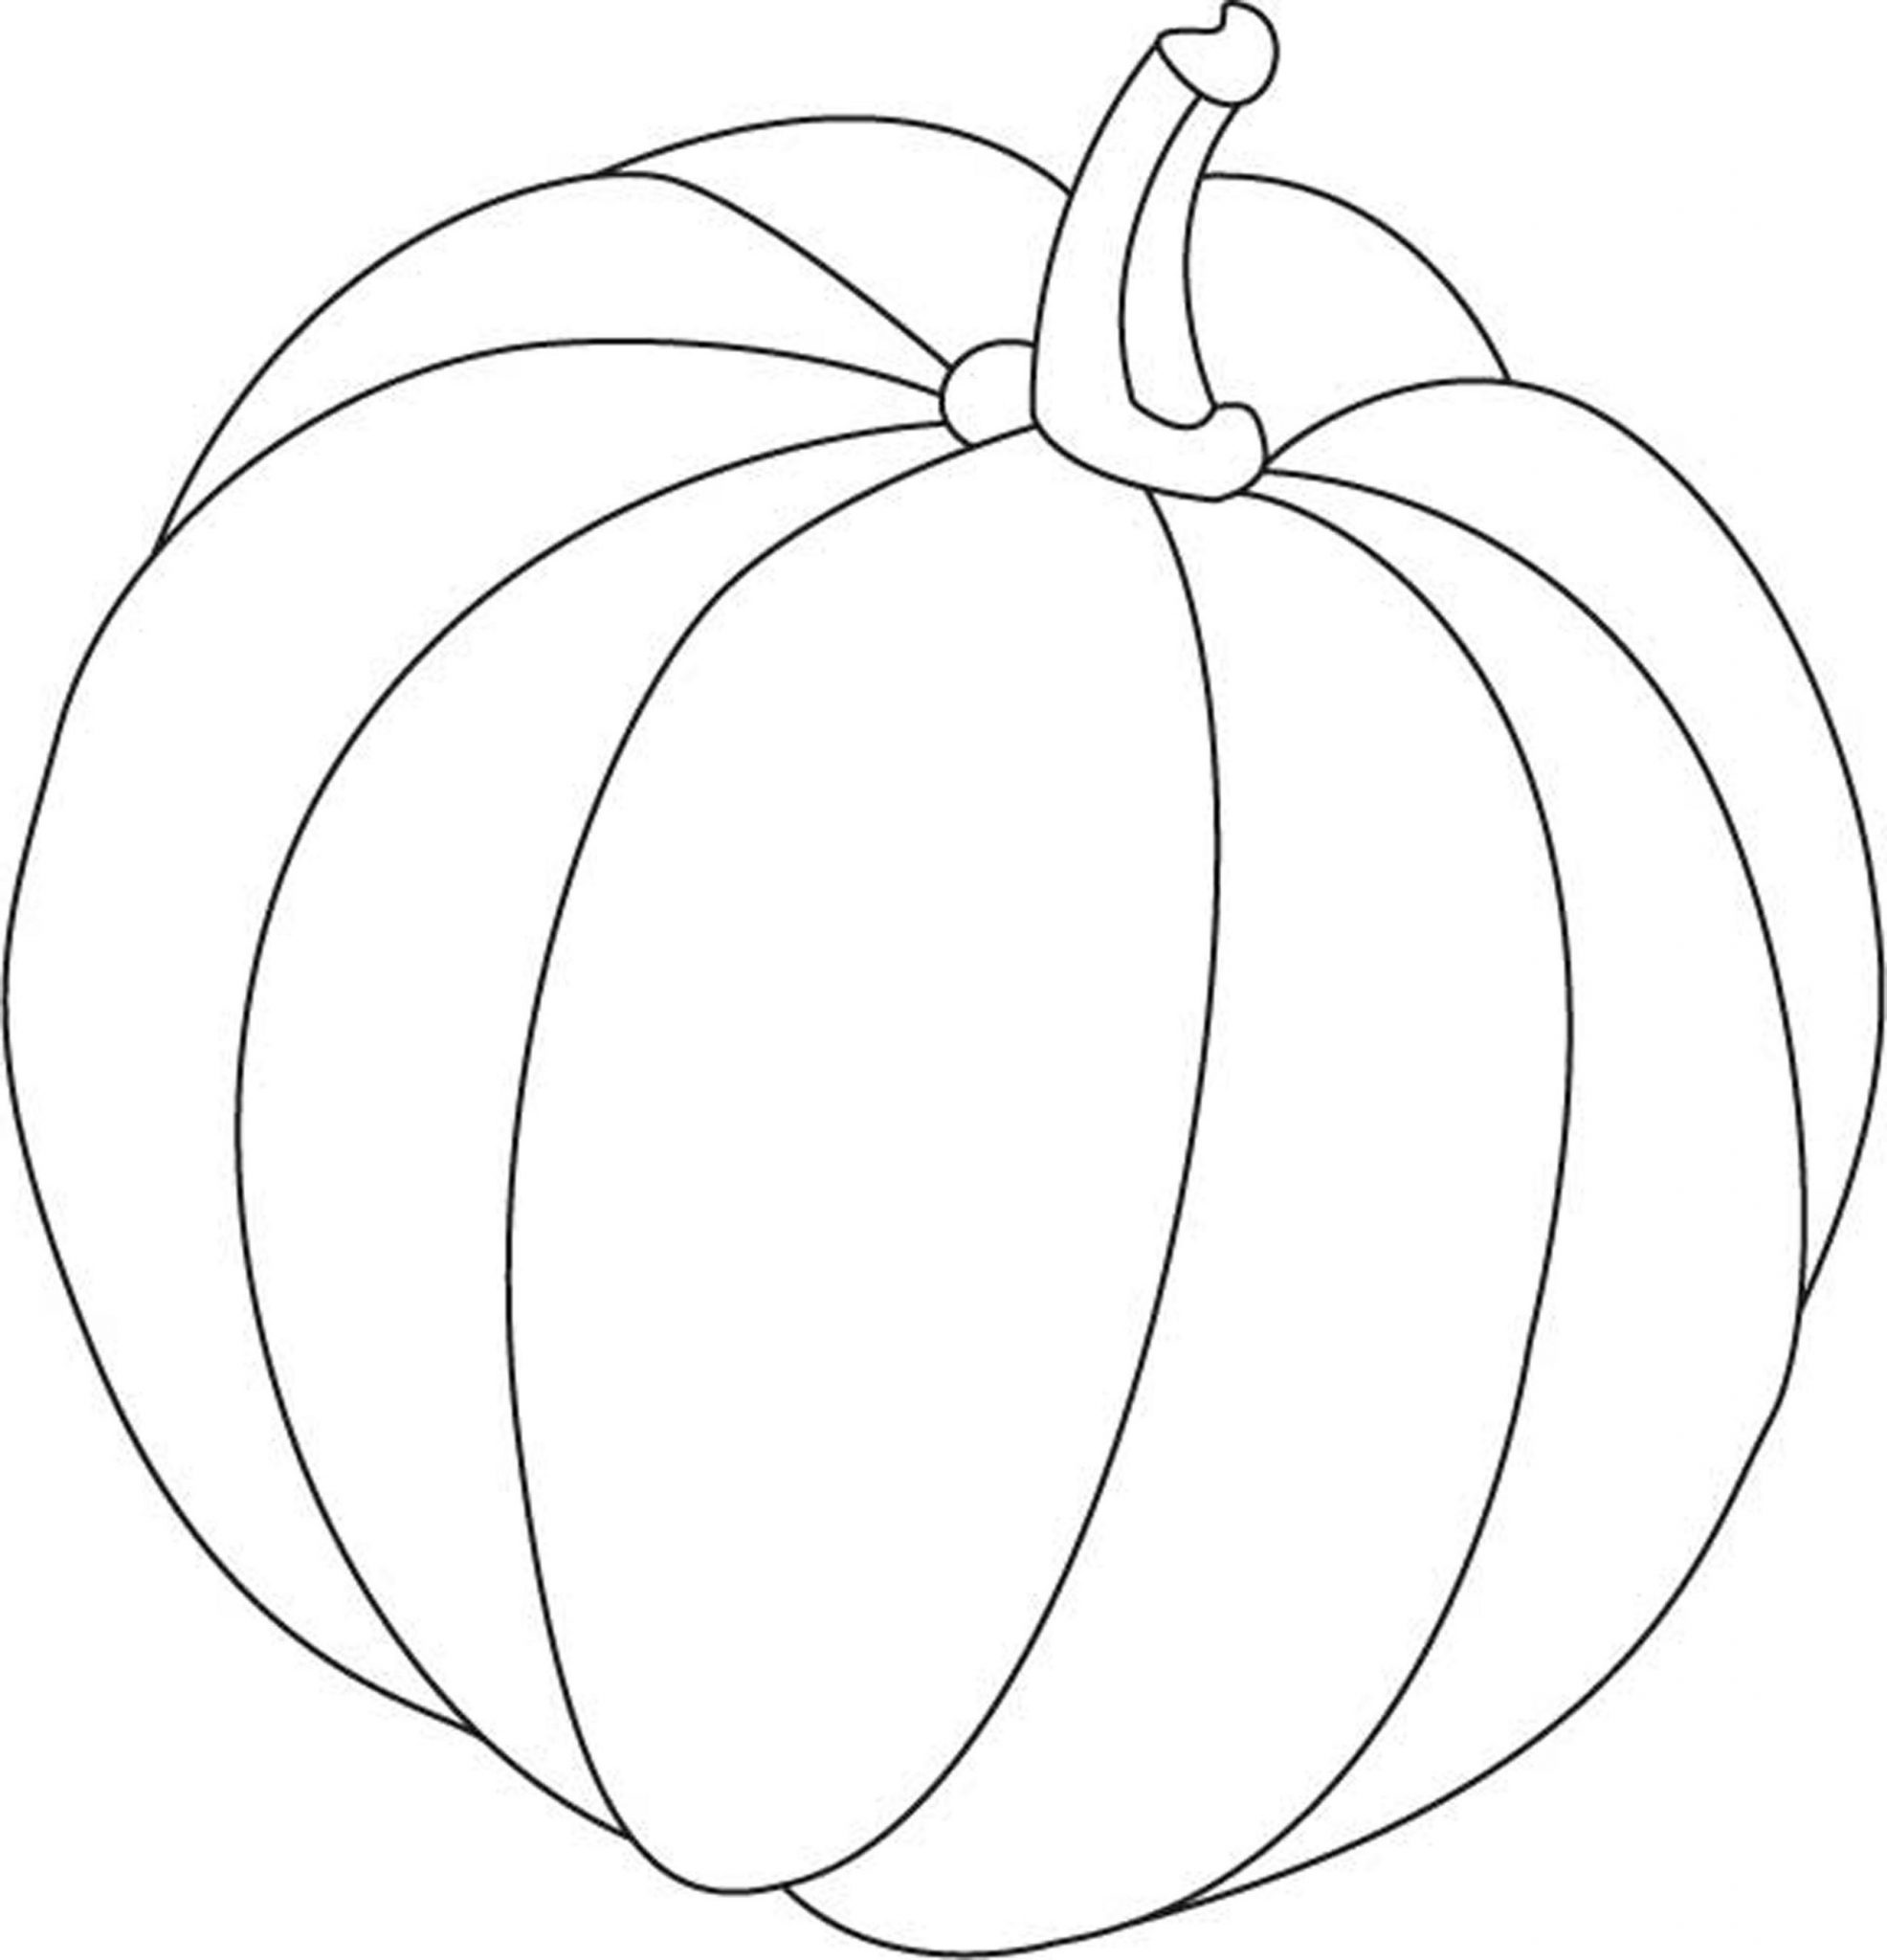 pumpking coloring pages cute pumpkin coloring pages at getcoloringscom free coloring pumpking pages